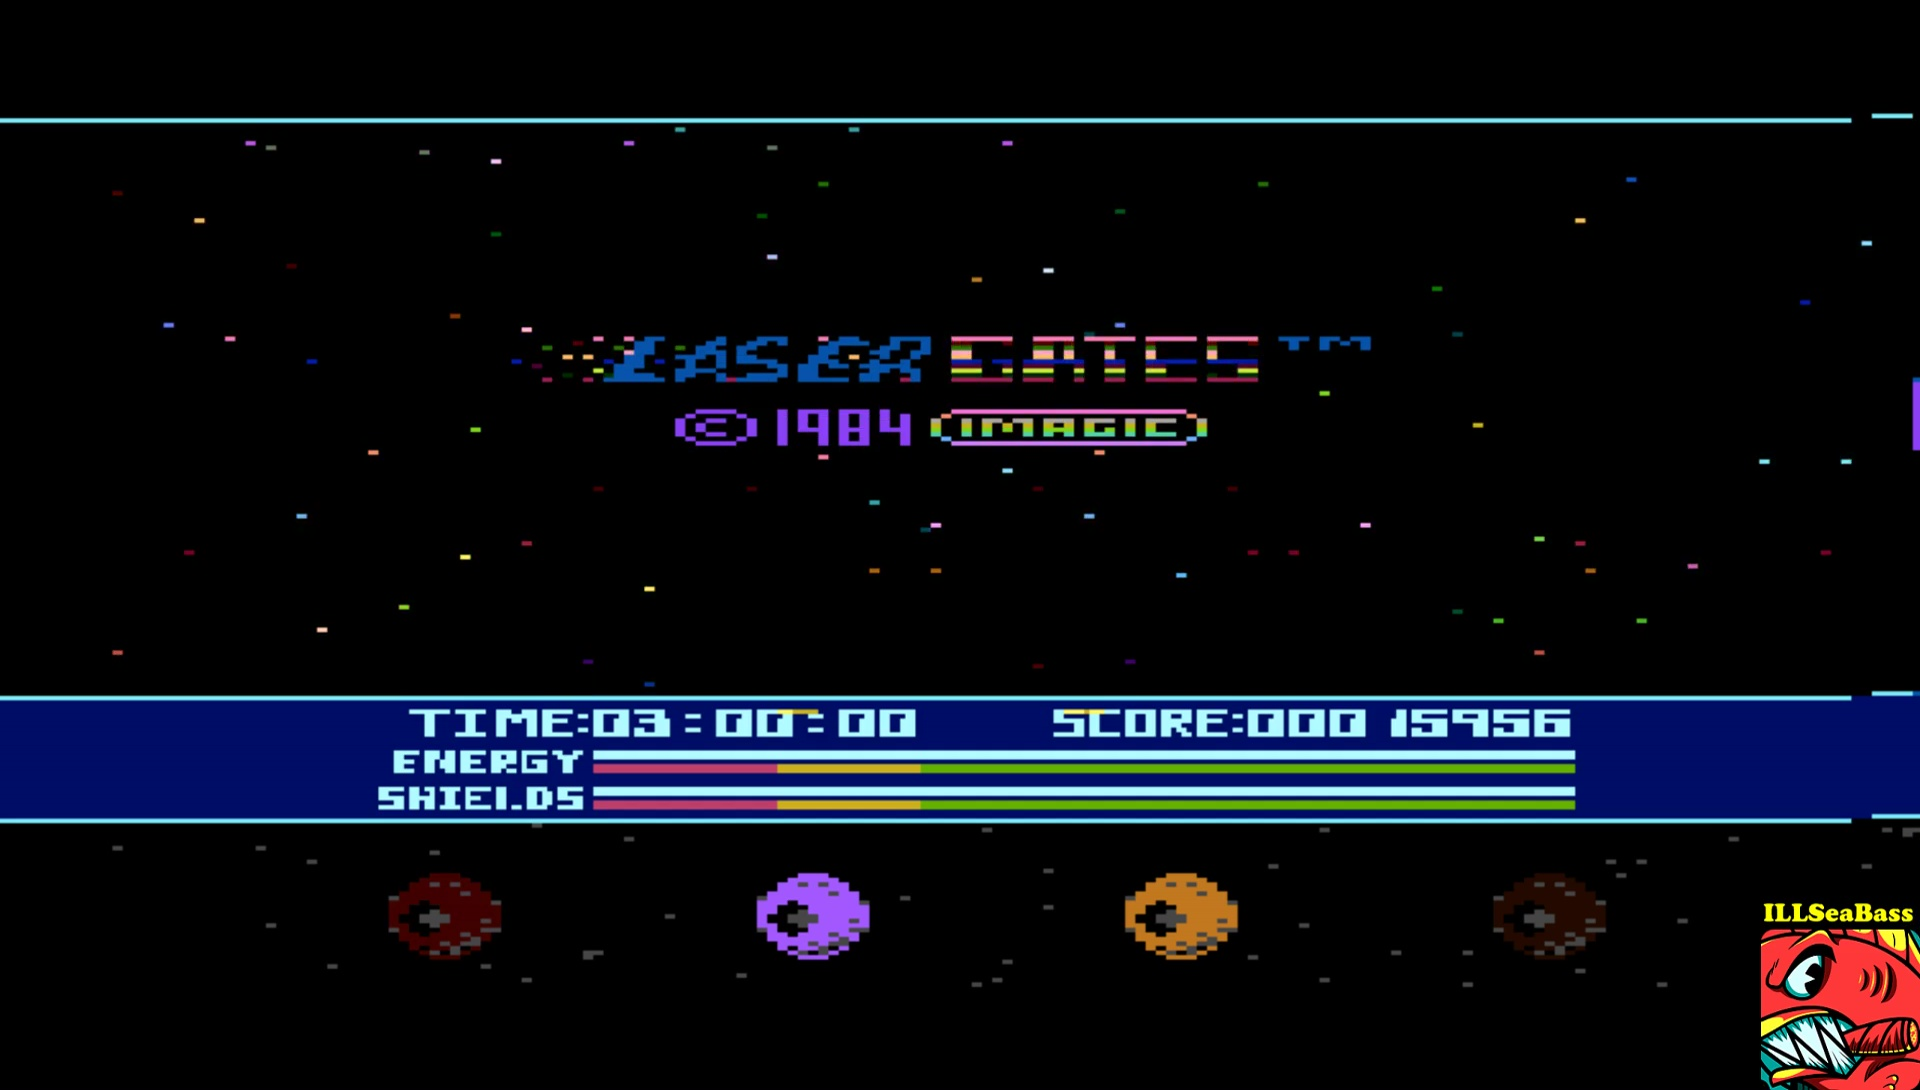 ILLSeaBass: Laser Gates (Atari 400/800/XL/XE Emulated) 15,956 points on 2017-03-22 21:24:07